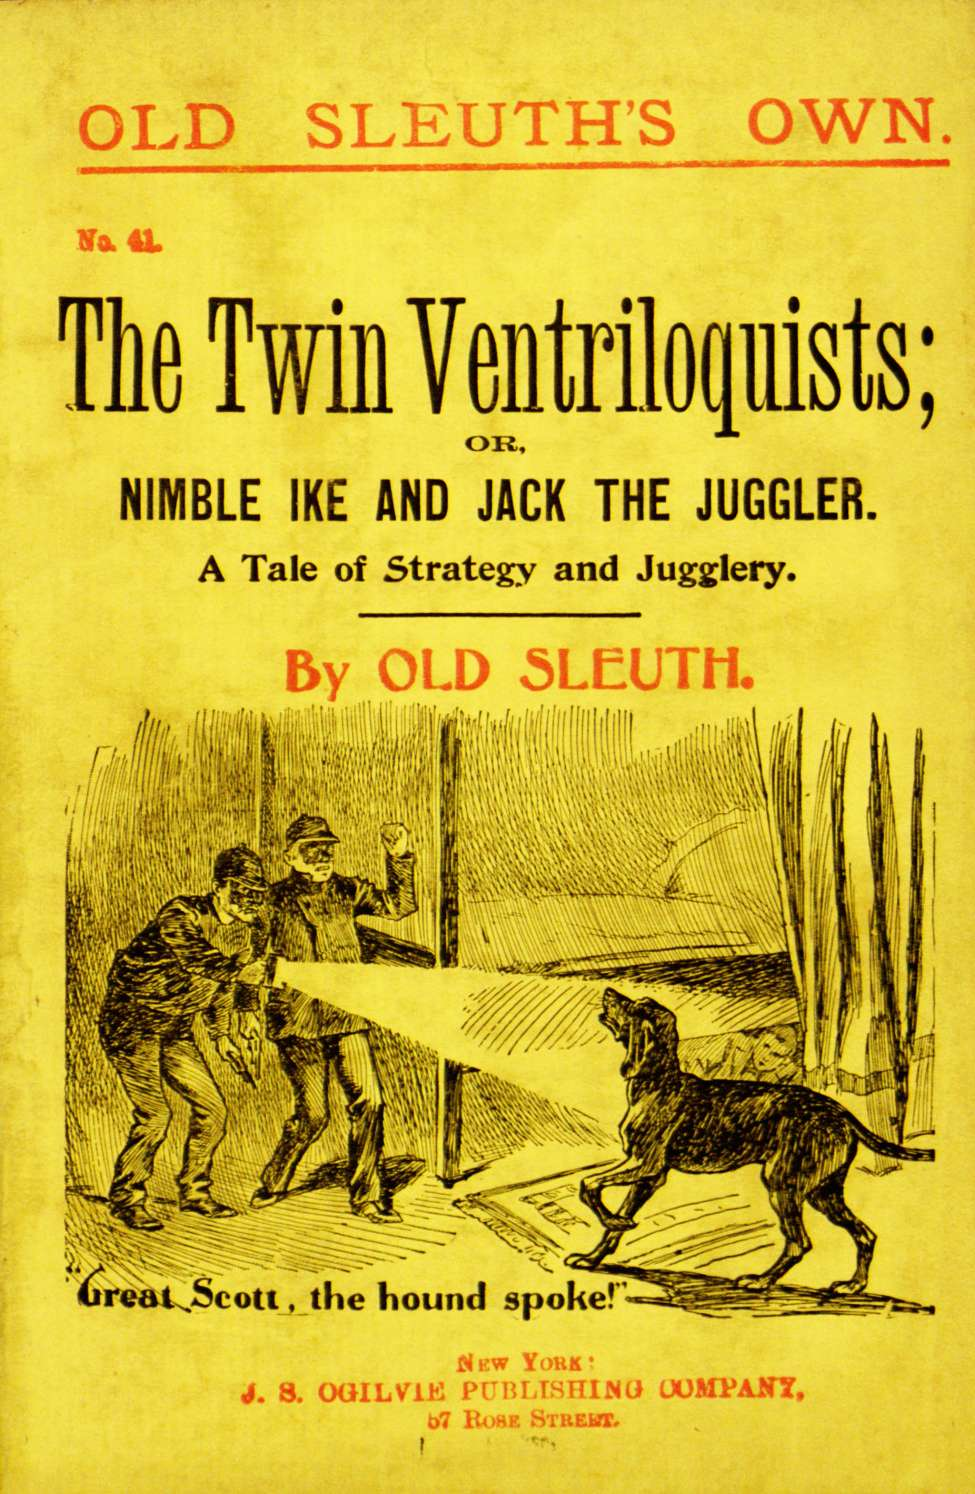 Comic Book Cover For Old Sleuth's Own 041 The Twin Ventriloquists